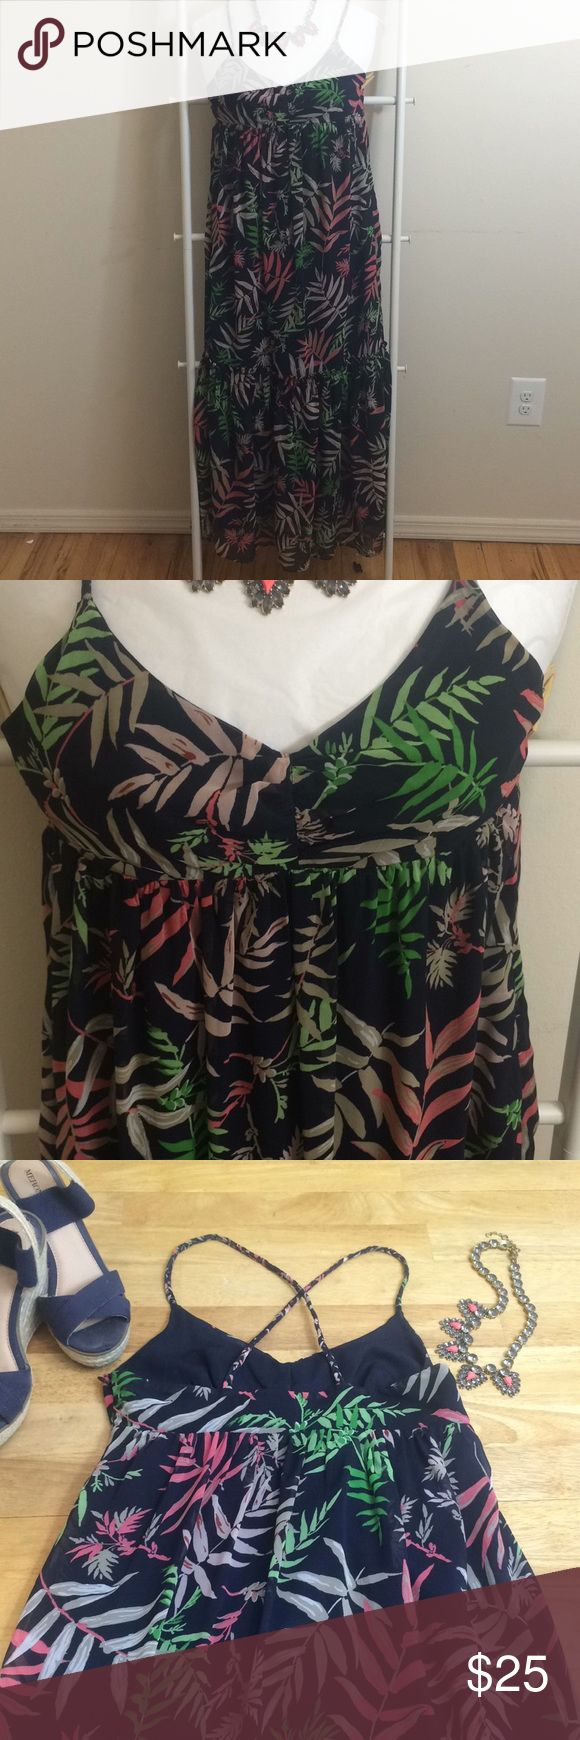 Floral The Webster Miami at Target Maxi Dress Floral The Webster Miami at Target Maxi Dress Limited Run Target Line Size 6  100% Polyester  Excellent Used Condition The Webster at Target Dresses Maxi